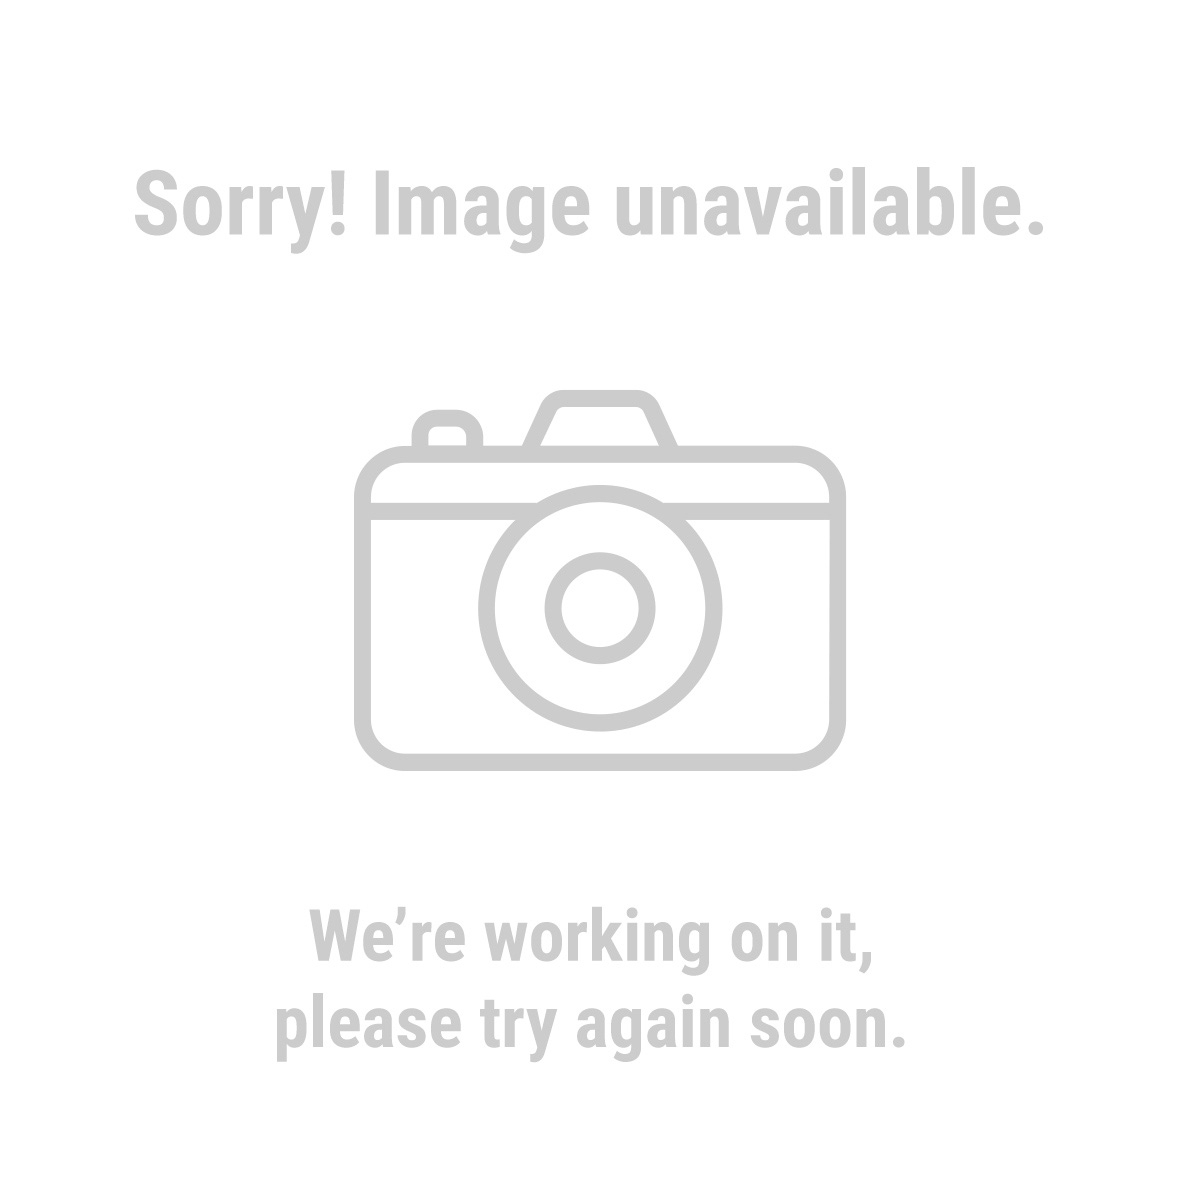 U.S. General 92474 Brake Bleeder and Vacuum Pump Kit